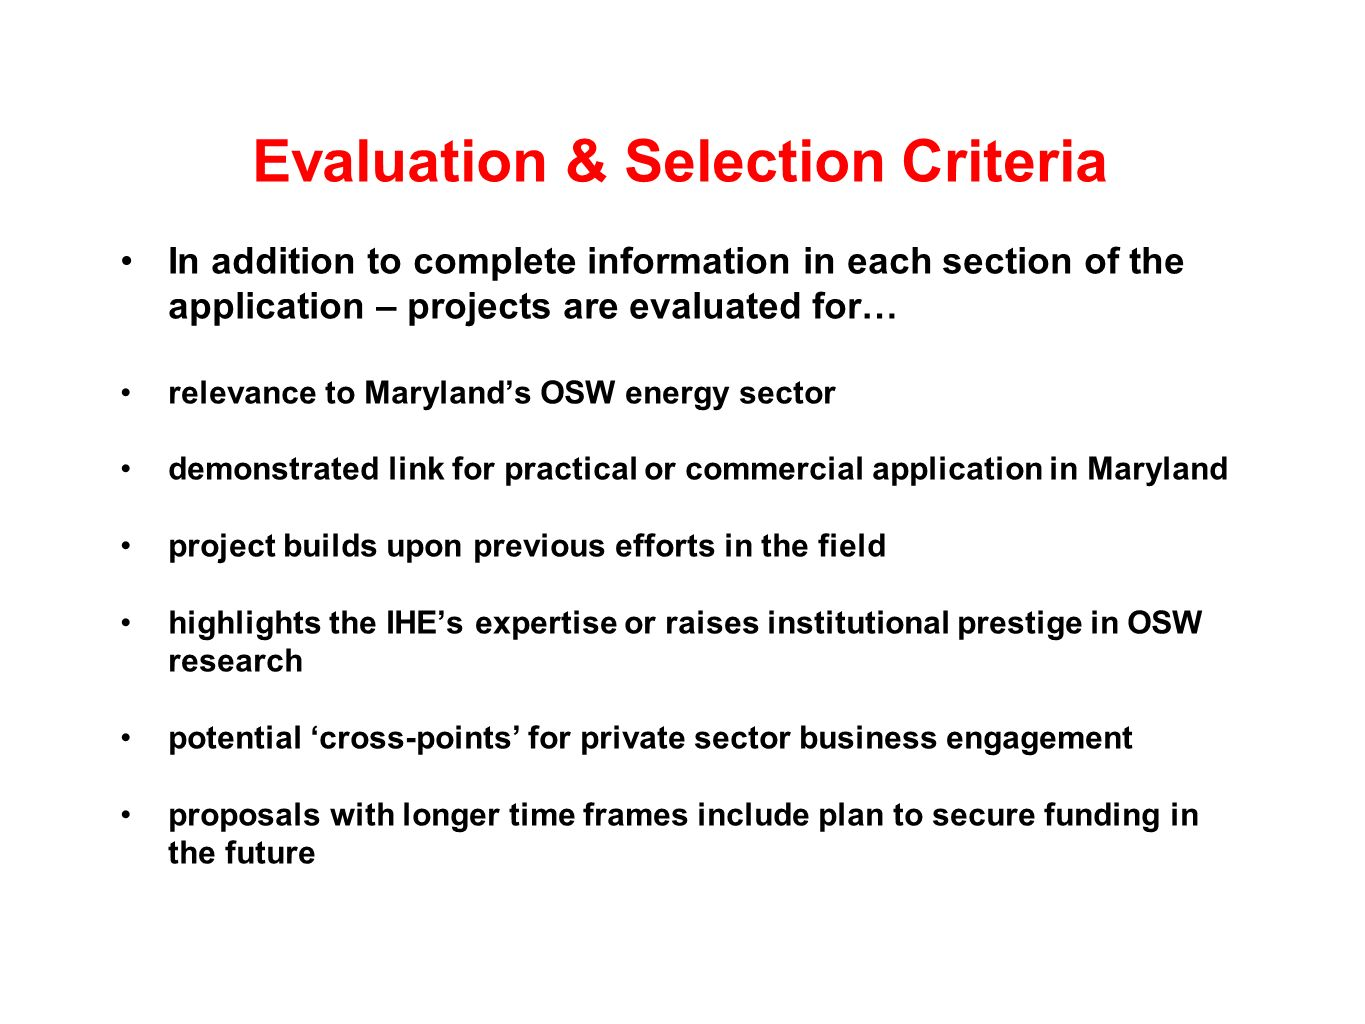 Evaluation & Selection Criteria In addition to complete information in each section of the application – projects are evaluated for… relevance to Marylands OSW energy sector demonstrated link for practical or commercial application in Maryland project builds upon previous efforts in the field highlights the IHEs expertise or raises institutional prestige in OSW research potential cross-points for private sector business engagement proposals with longer time frames include plan to secure funding in the future